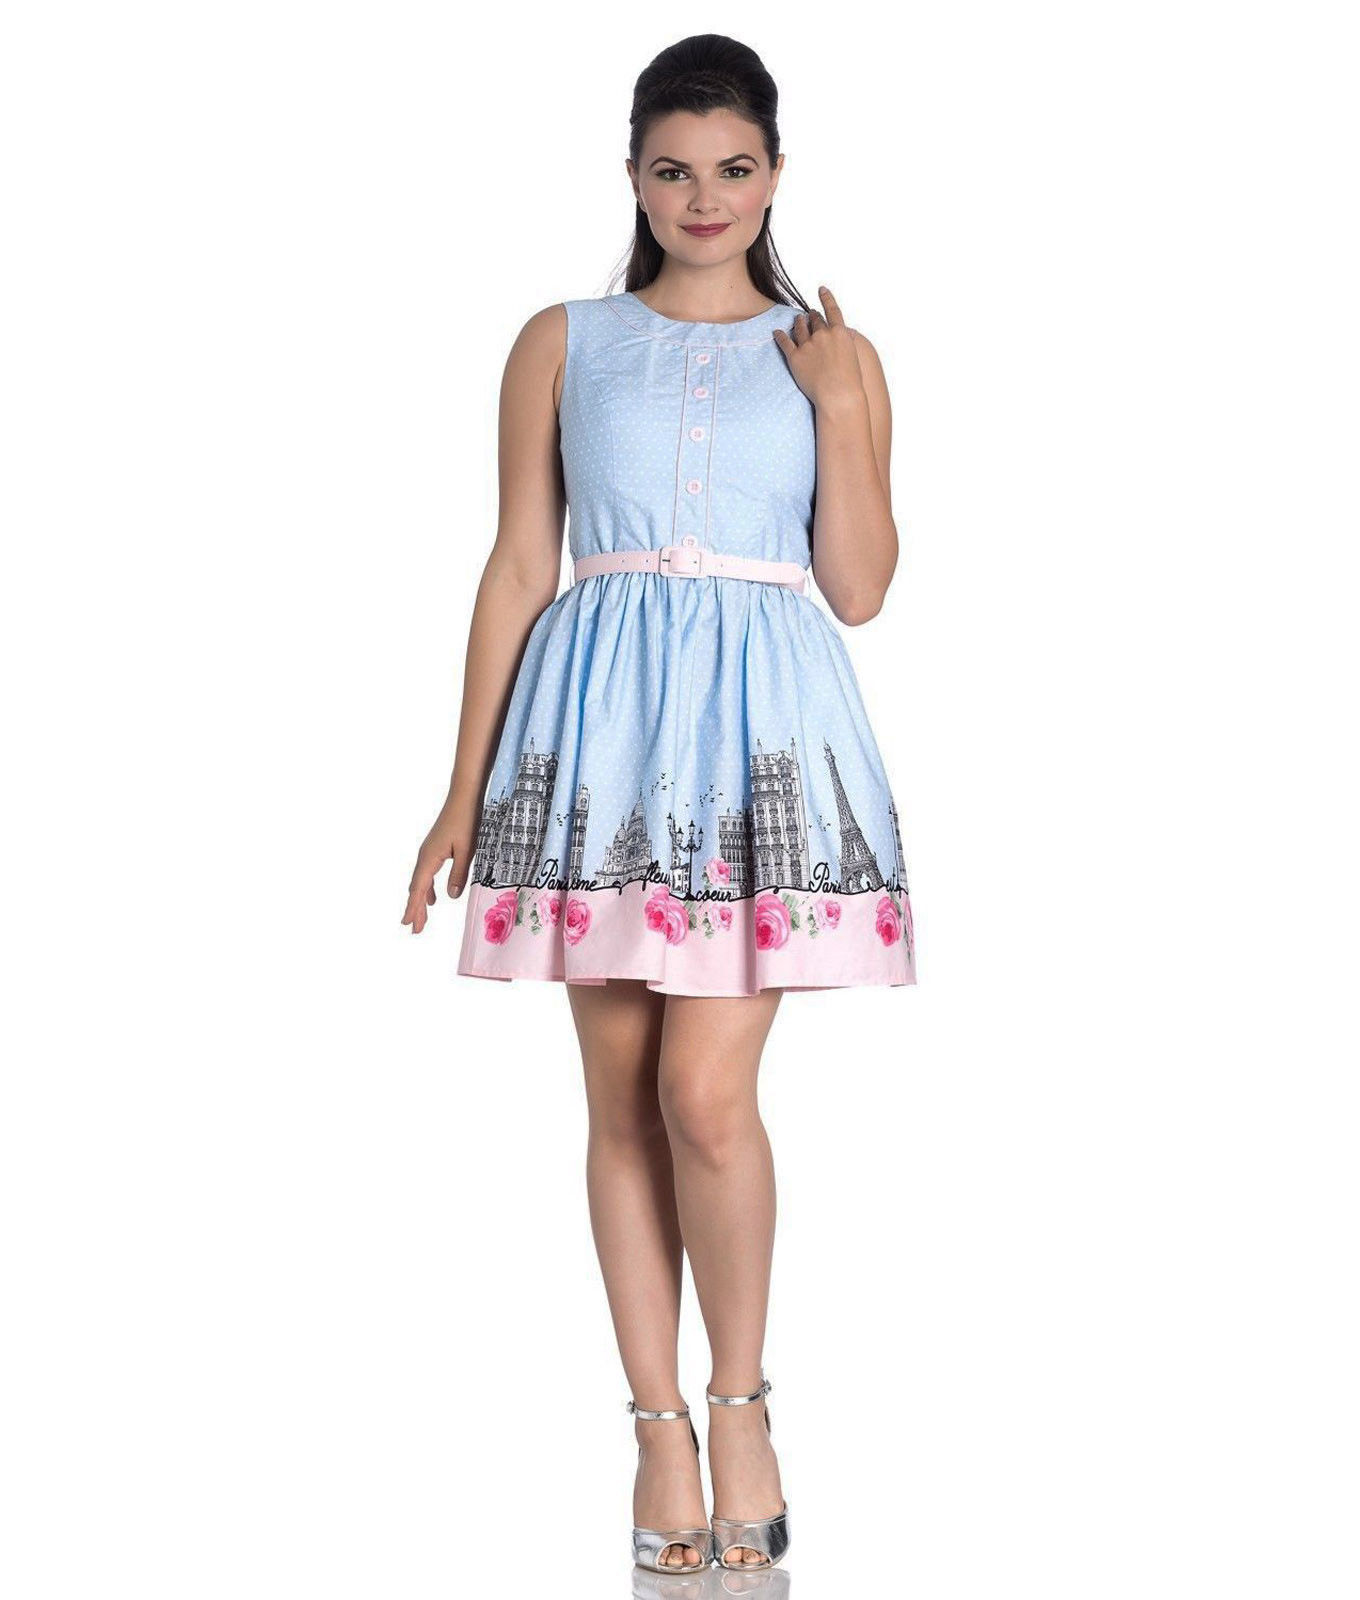 Hell-Bunny-50s-Vintage-Blue-Polka-Dot-PANAME-Mini-Dress-Paris-All-Sizes thumbnail 3